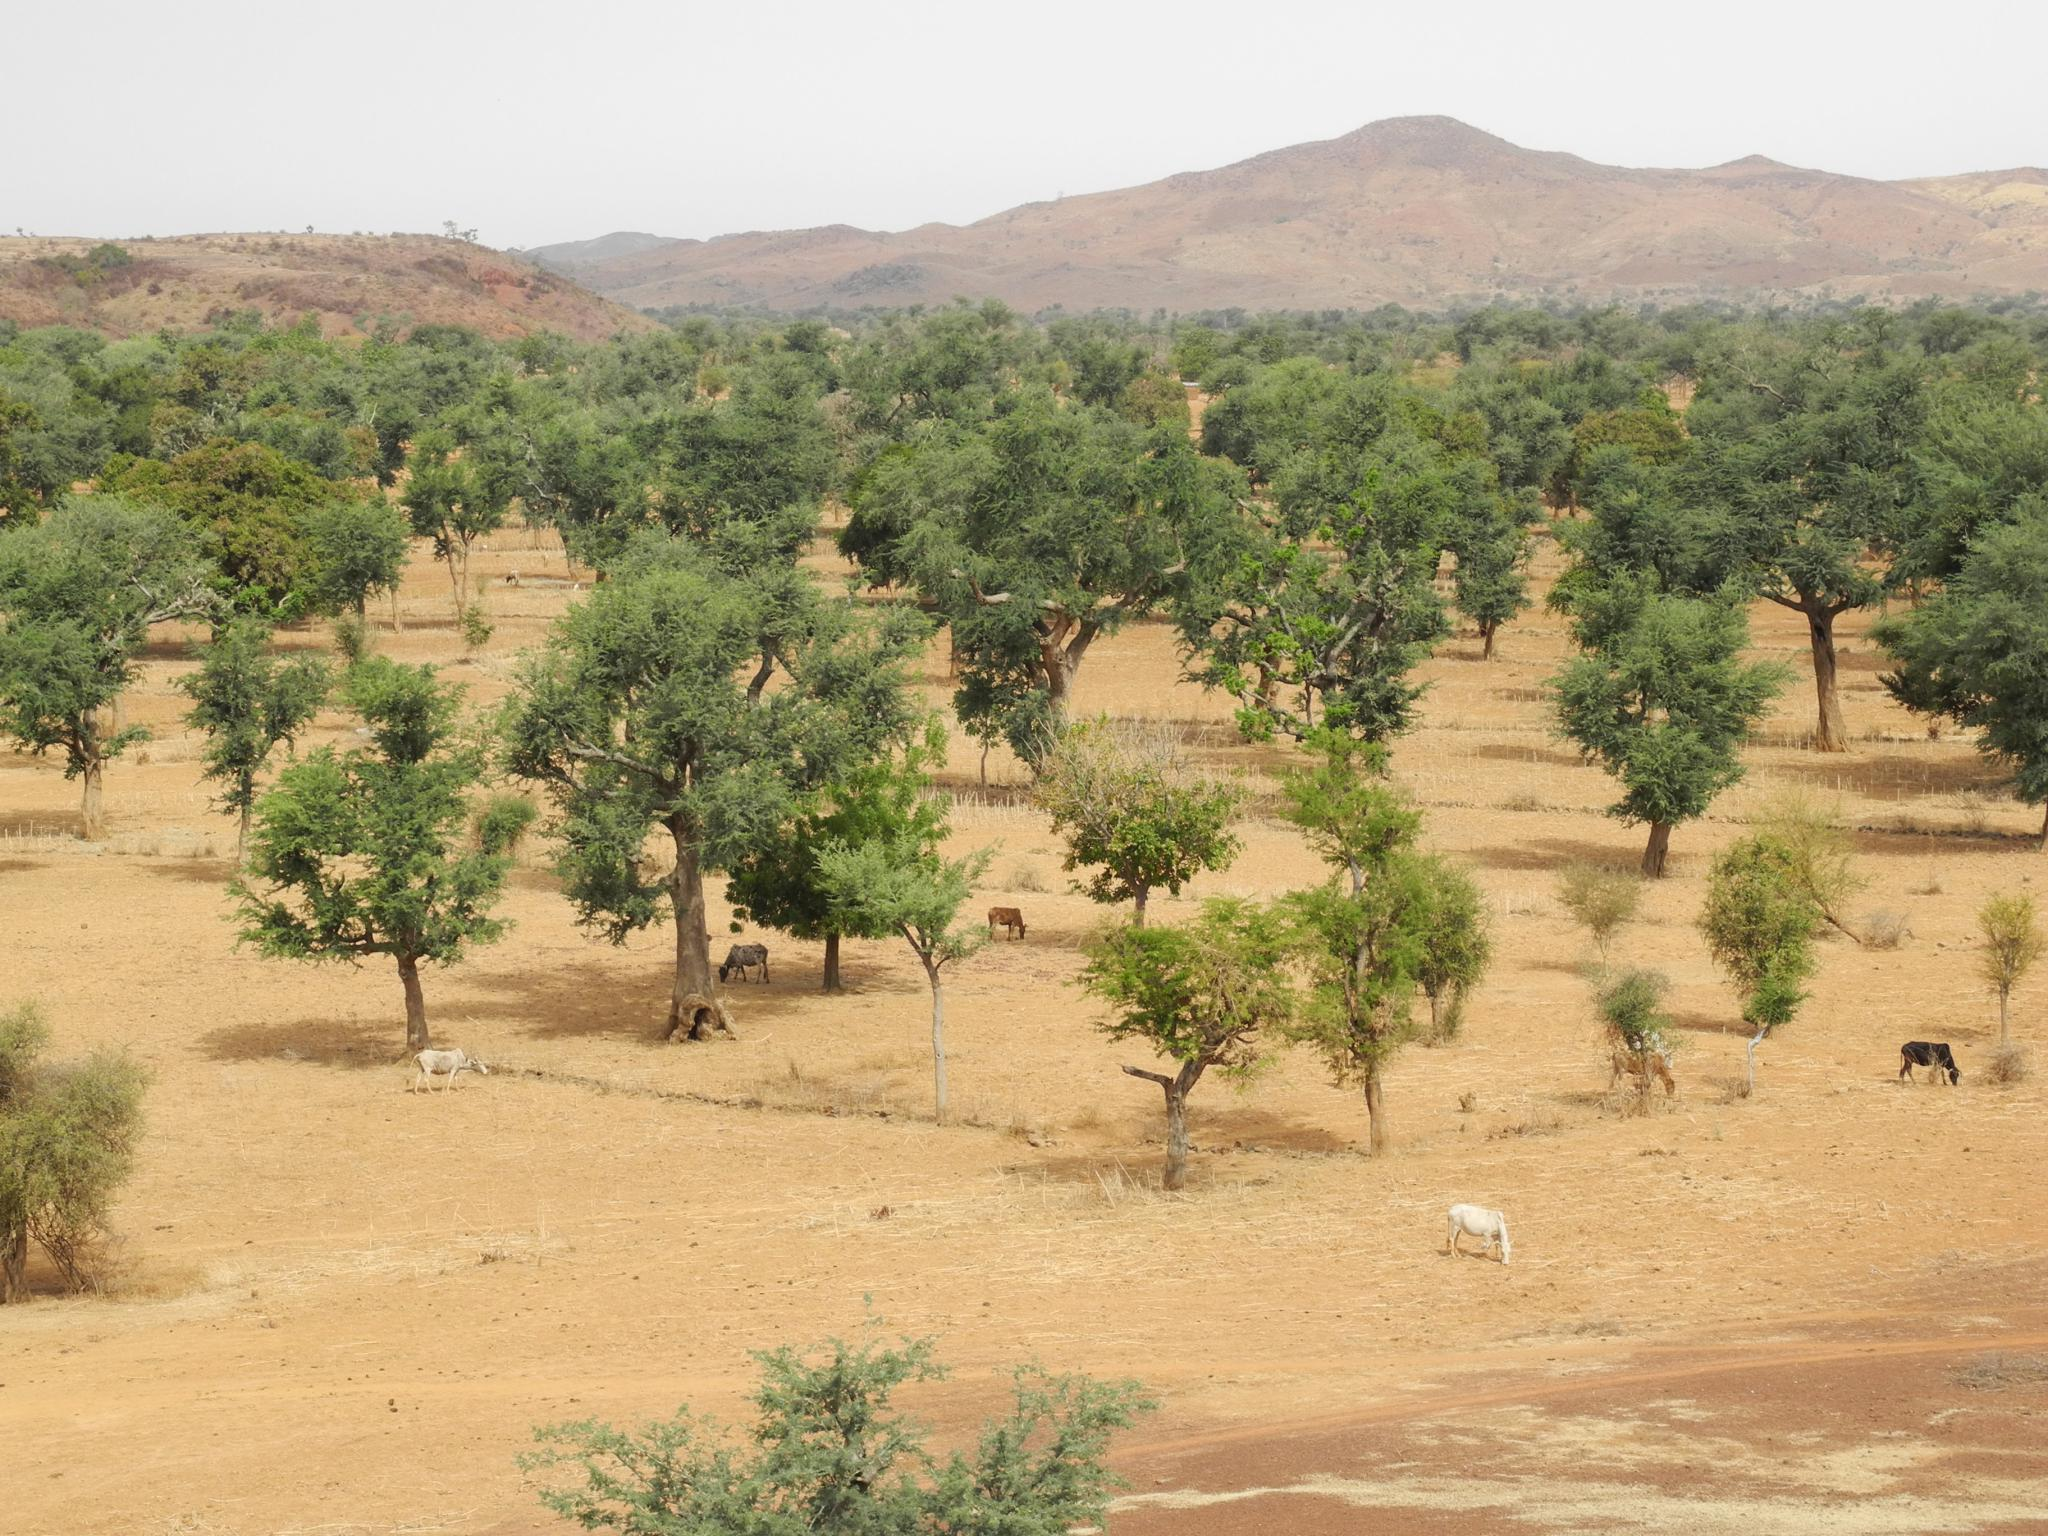 Farmer-managed natural regeneration in the broad valley near Rissiam, northern Burkina Faso. Nearly all of the land under the trees is devoted to growing cereal crops. ©Gray Tappan/USGS